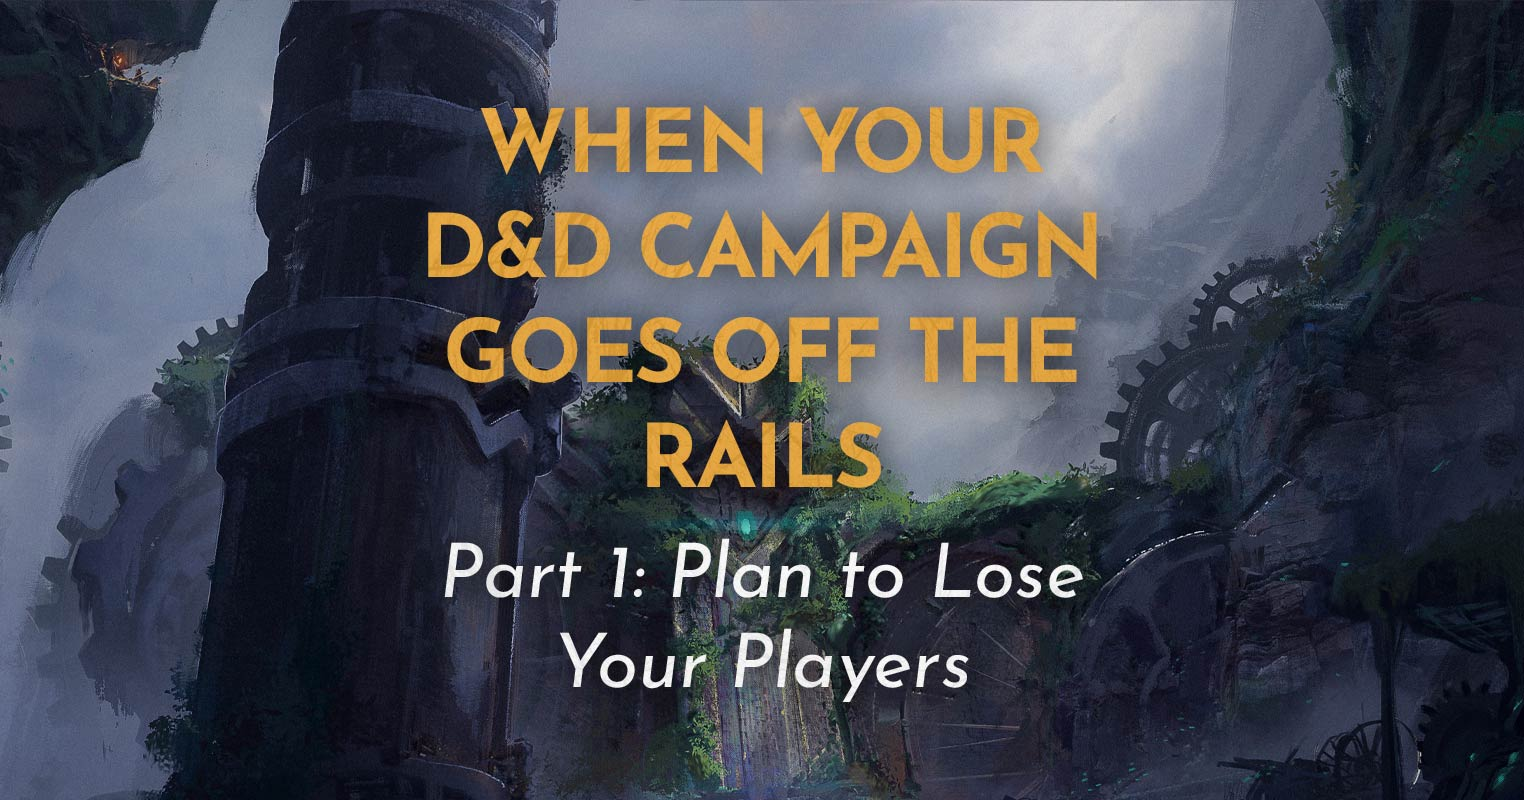 Part 1: Plan to Lose Your Players